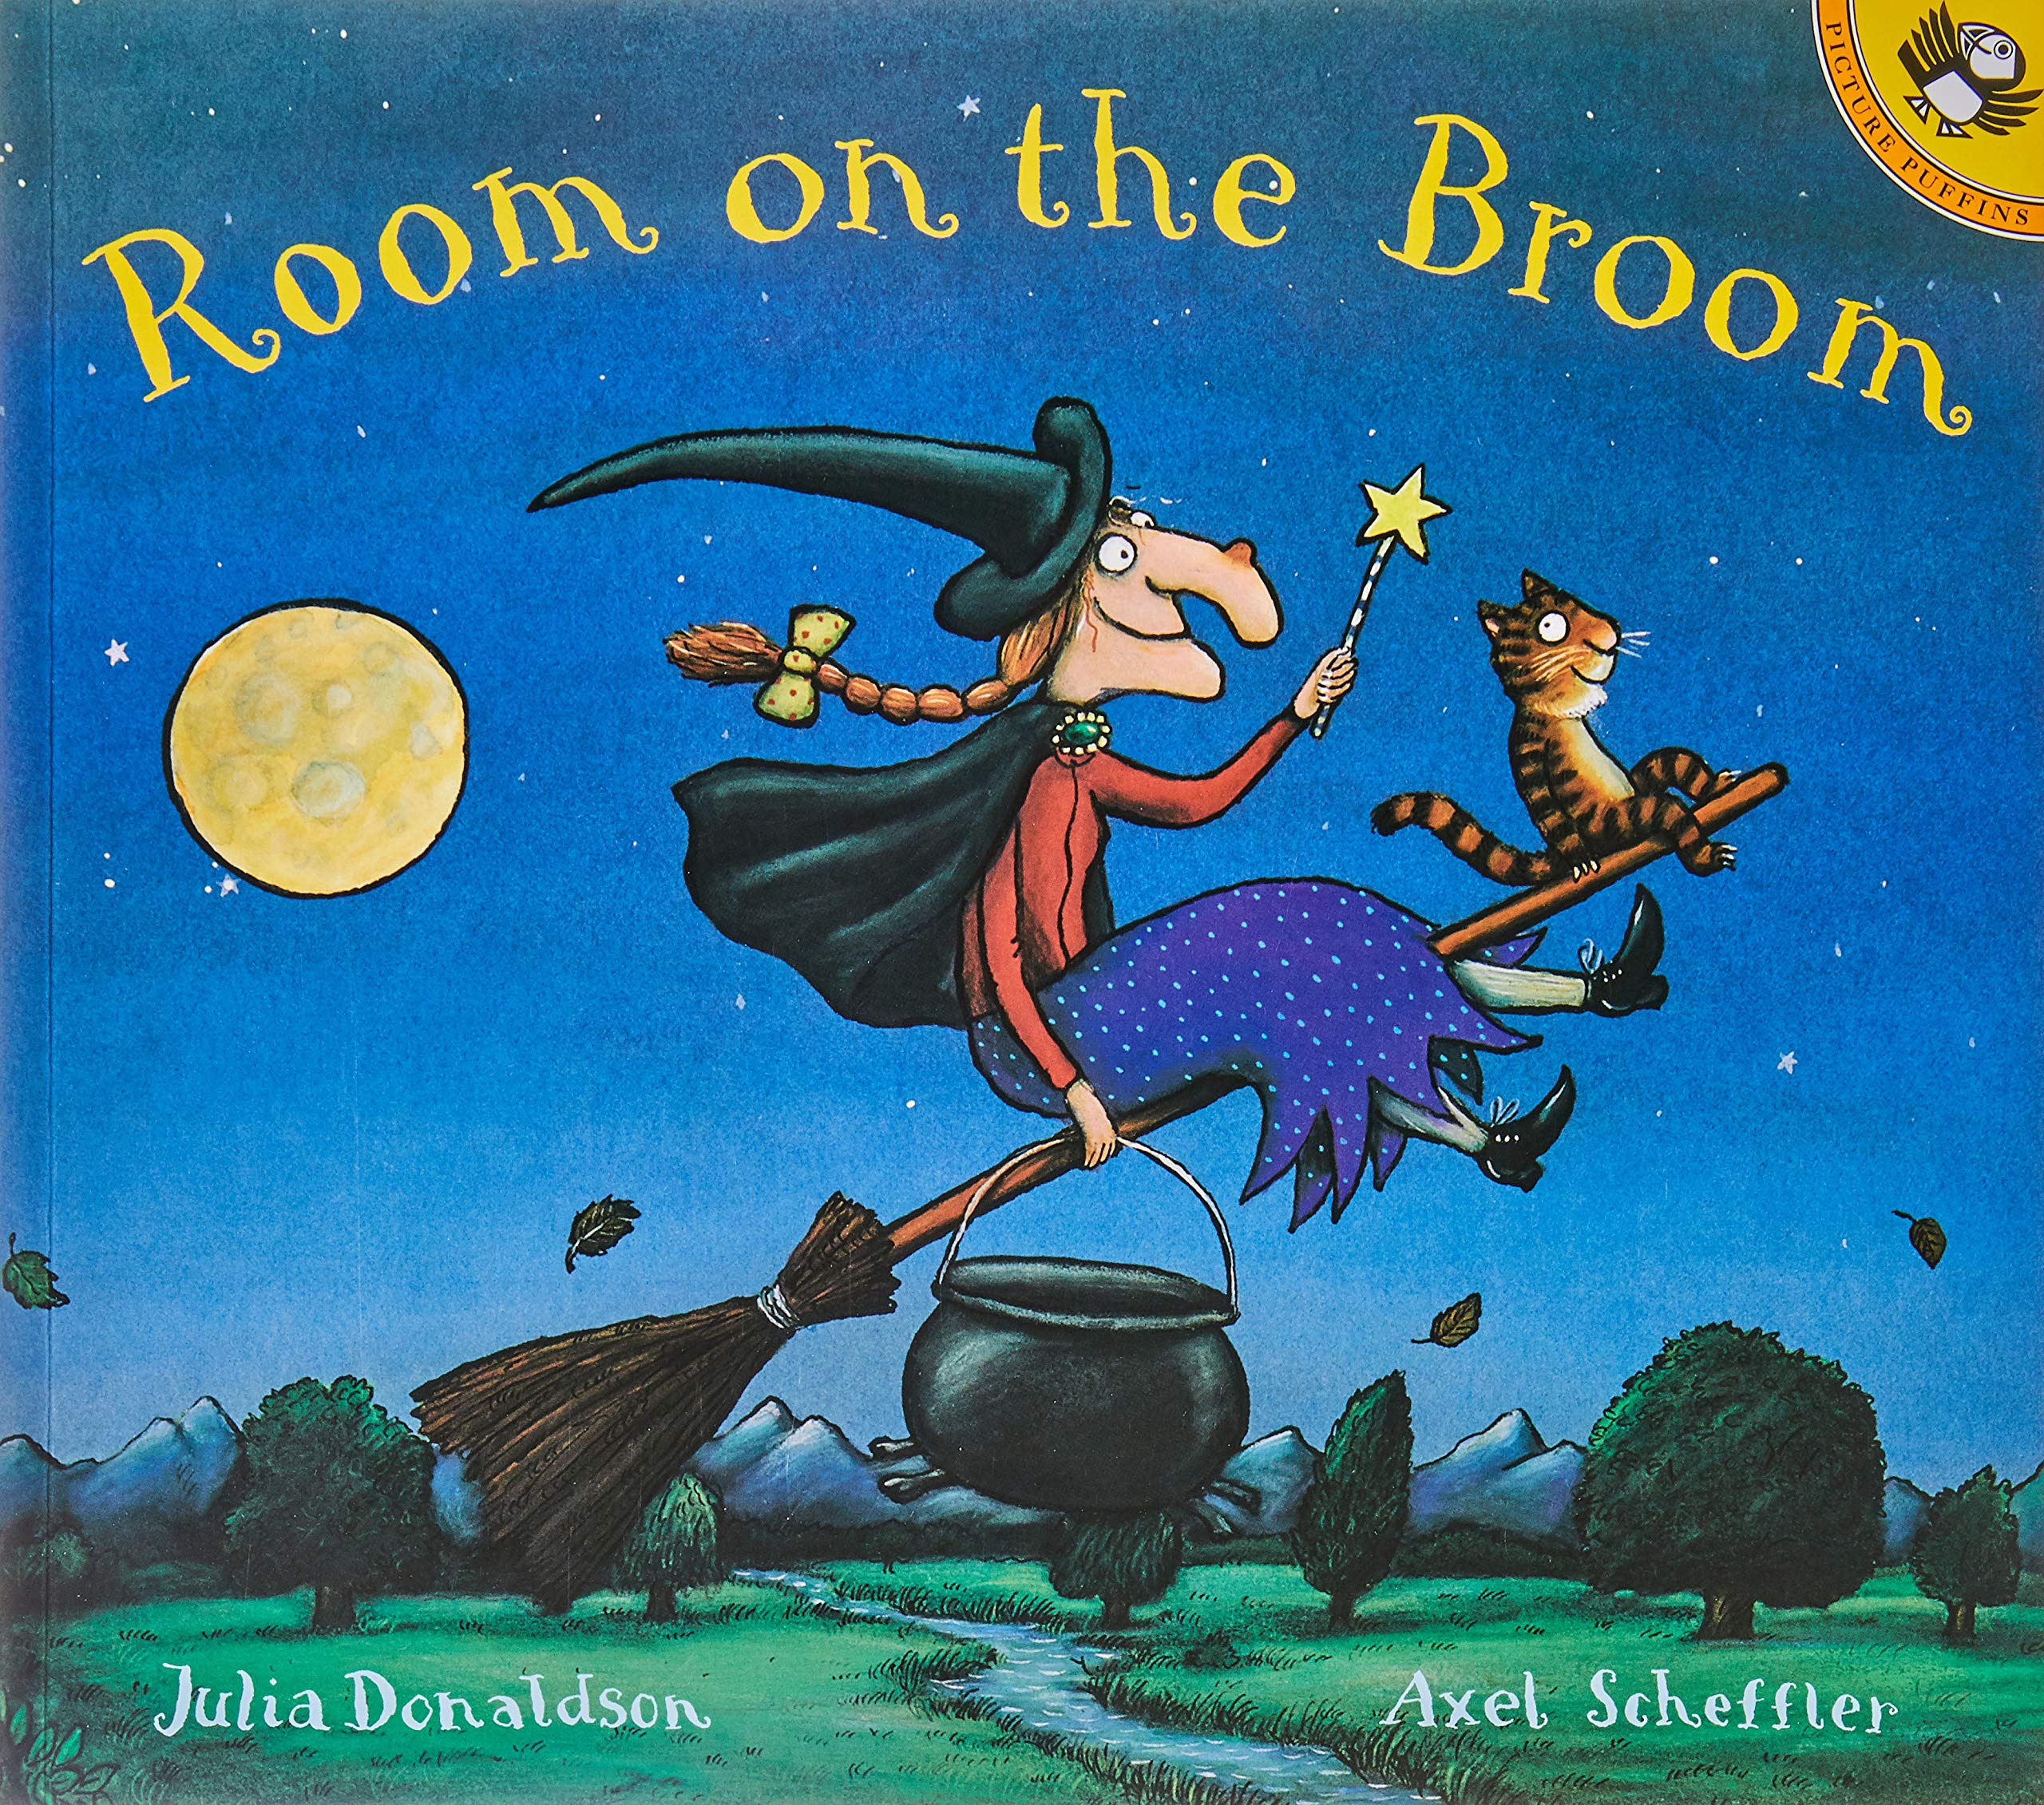 A1XyS0D1S L - Room on the Broom